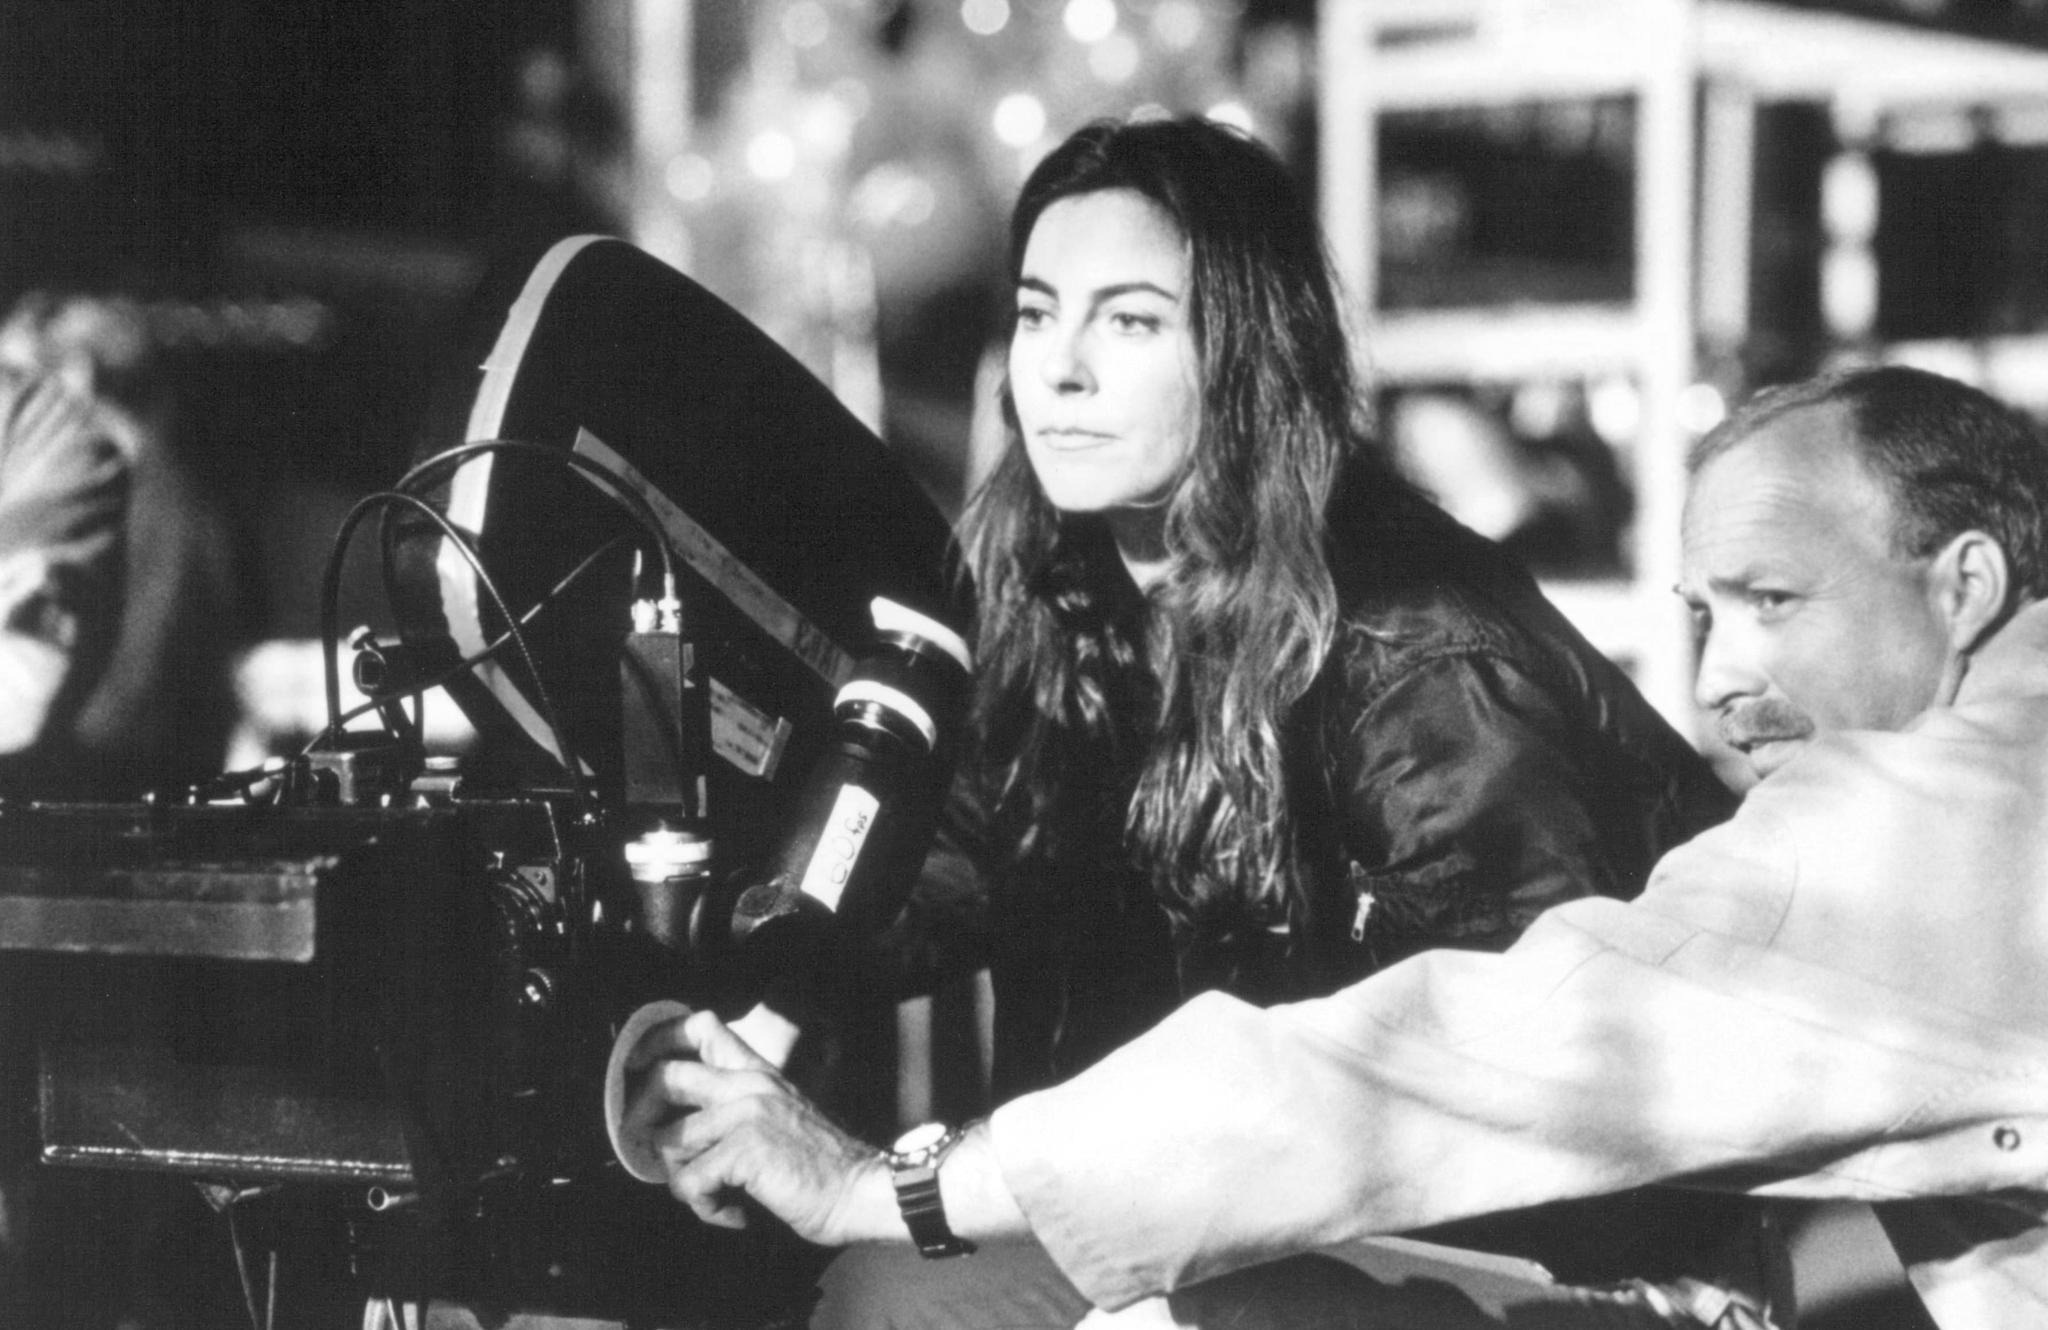 A List of Resources for Female Filmmakers